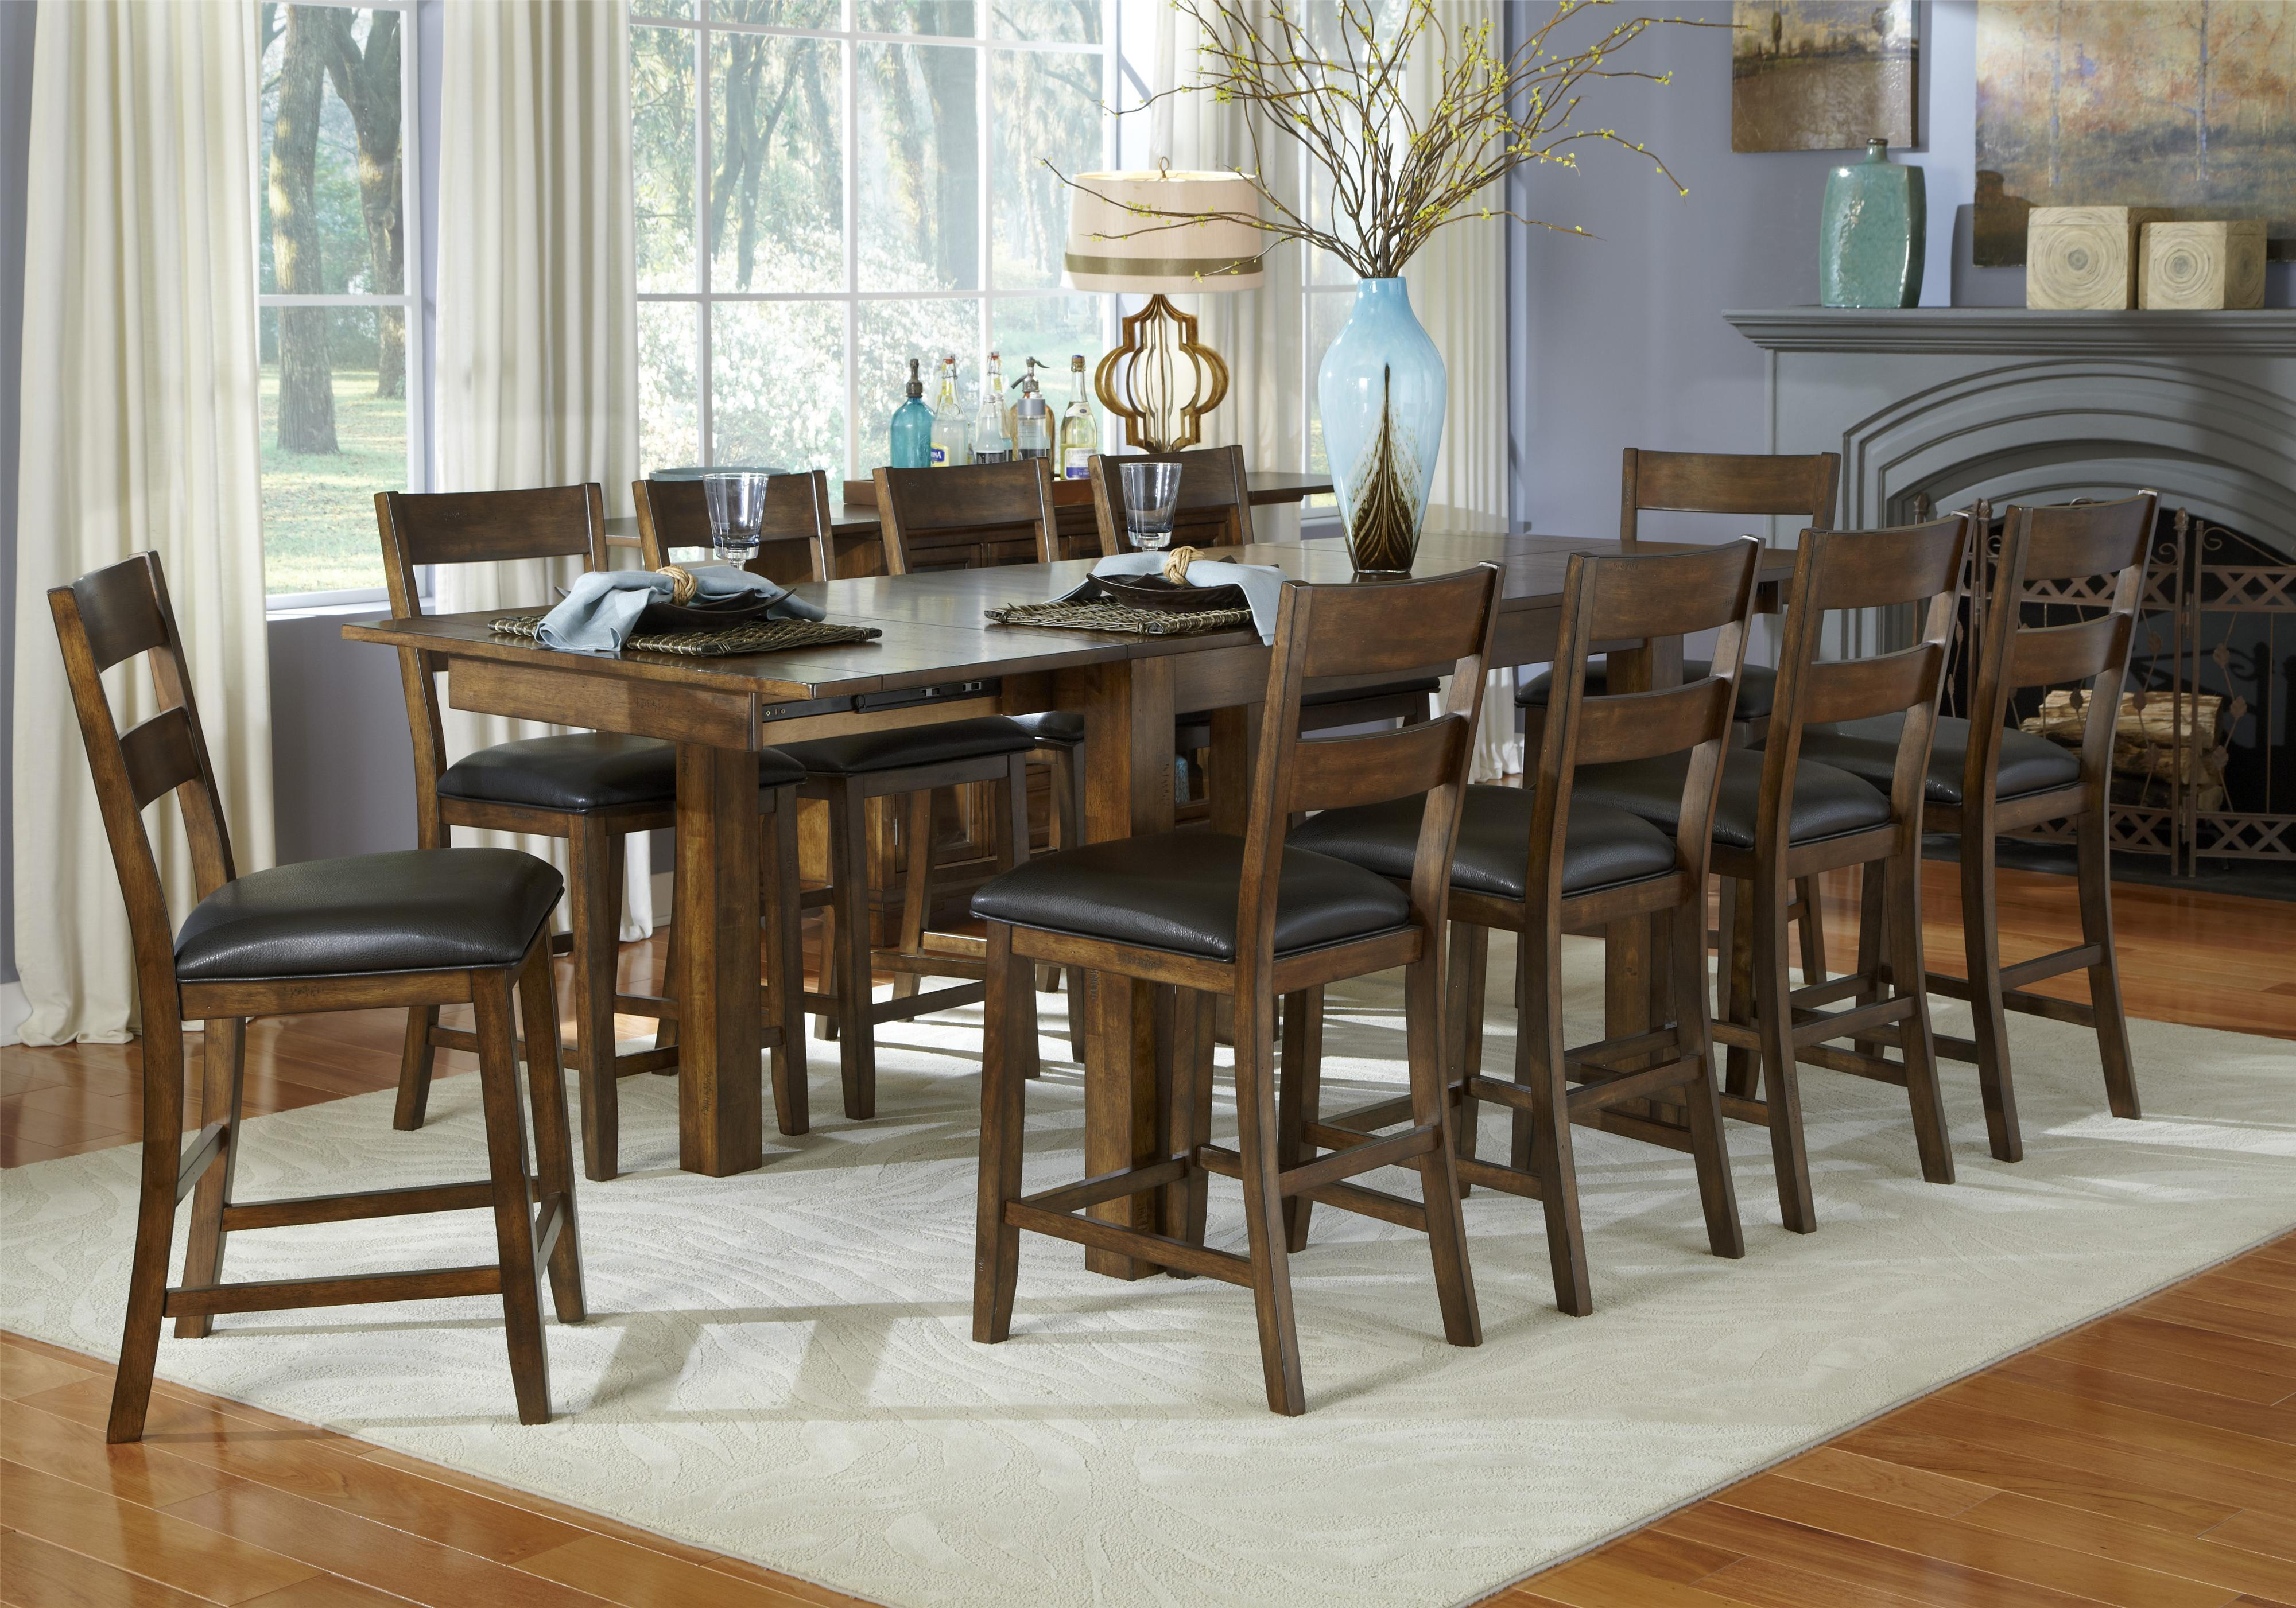 image of rustic dining room furniture